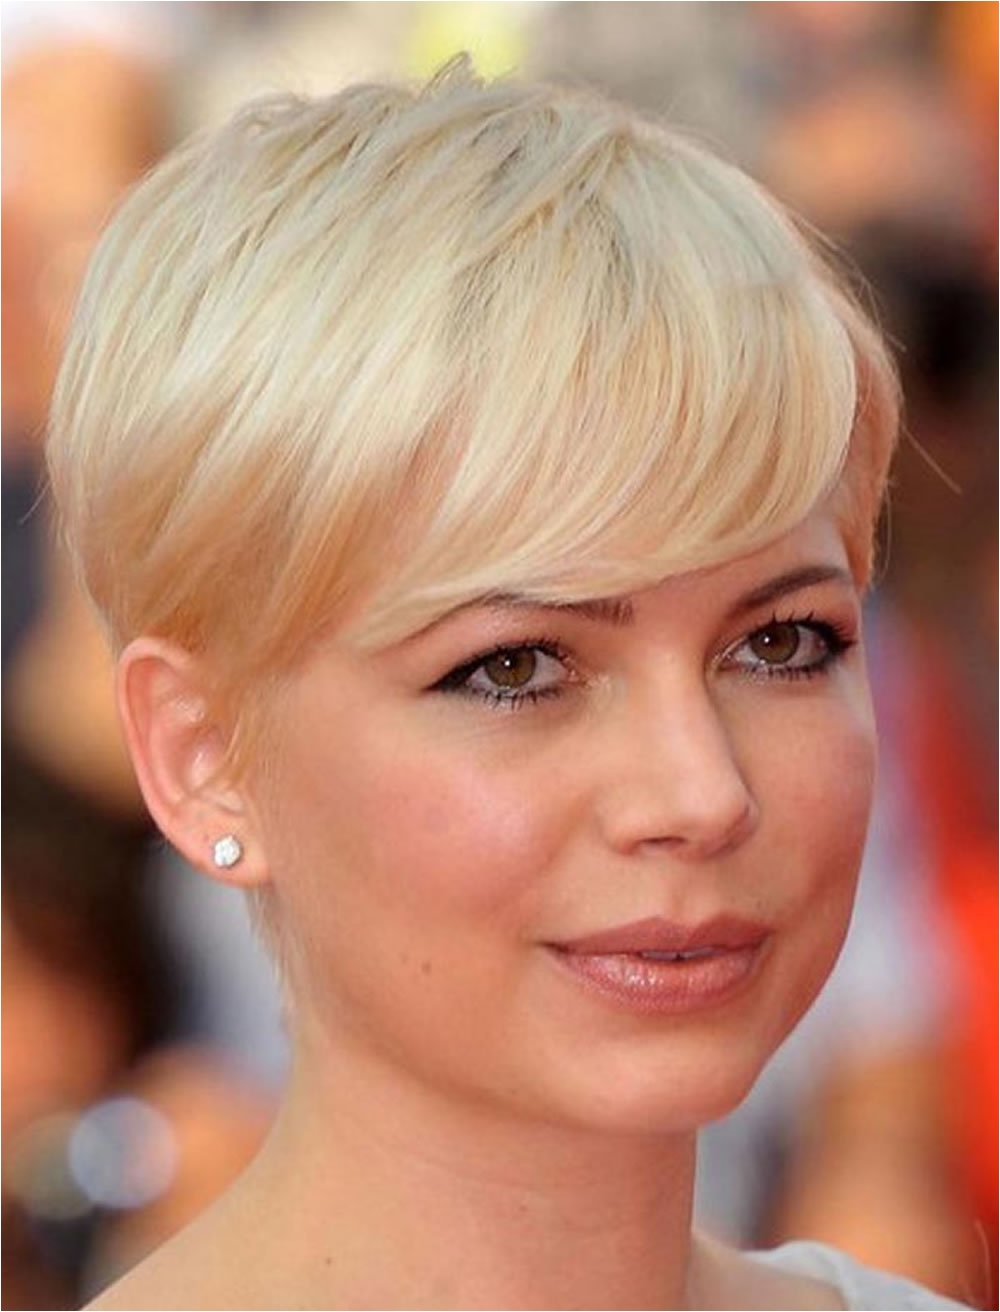 Hairstyles For Fine Thin Hair And Long Face Short Haircuts For Round Within Short Hairstyles For Chubby Face (View 23 of 25)